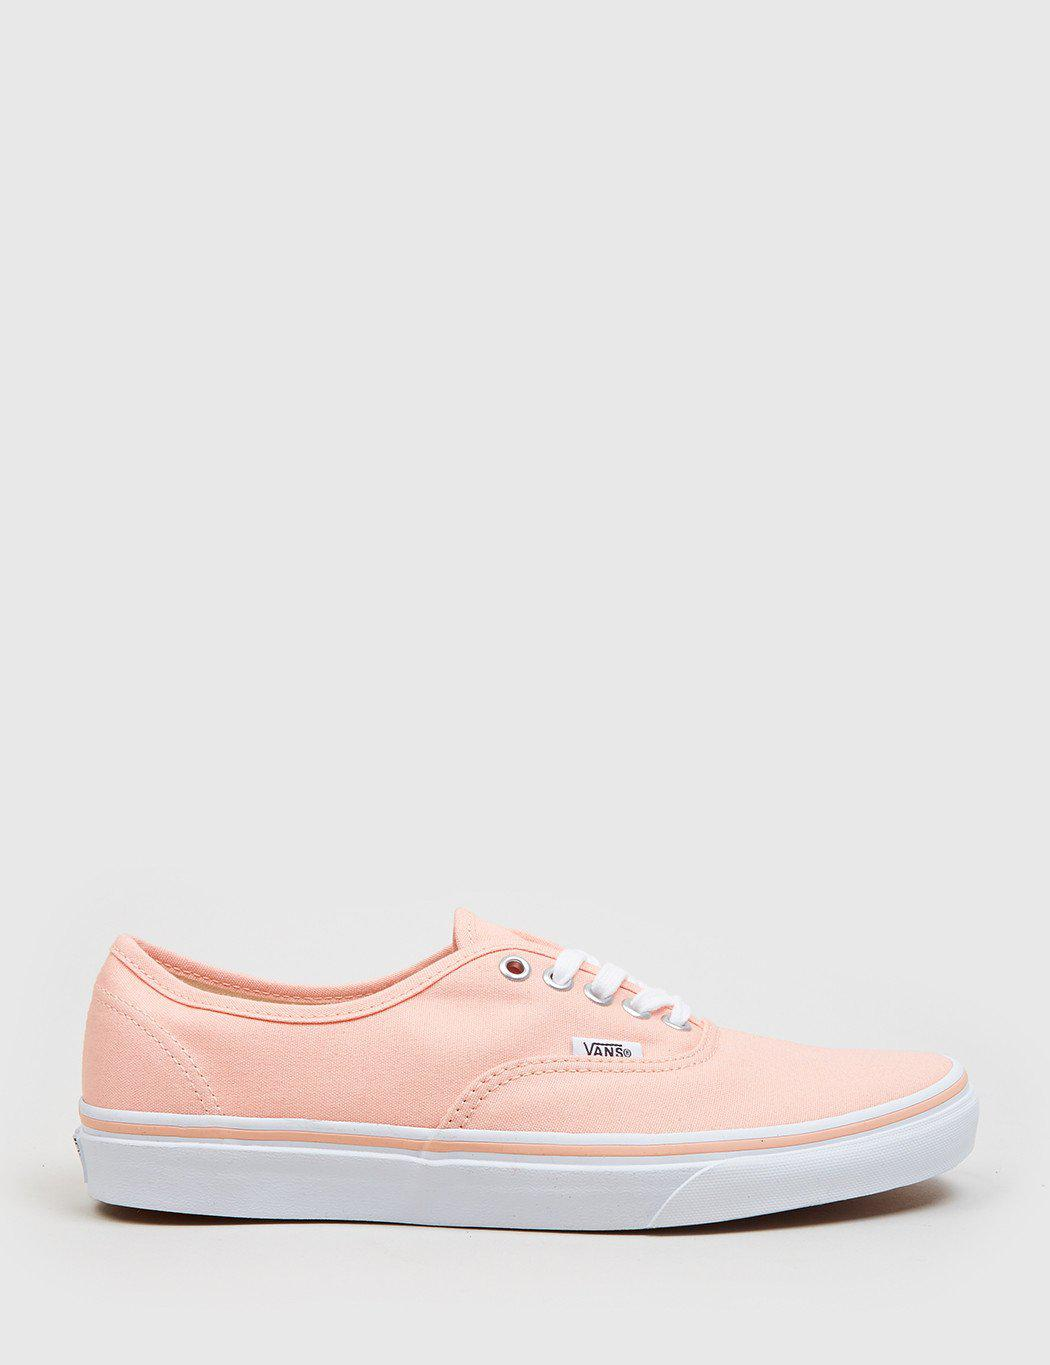 a06991cde3 Vans Pastels Authentic (canvas) in Pink for Men - Lyst